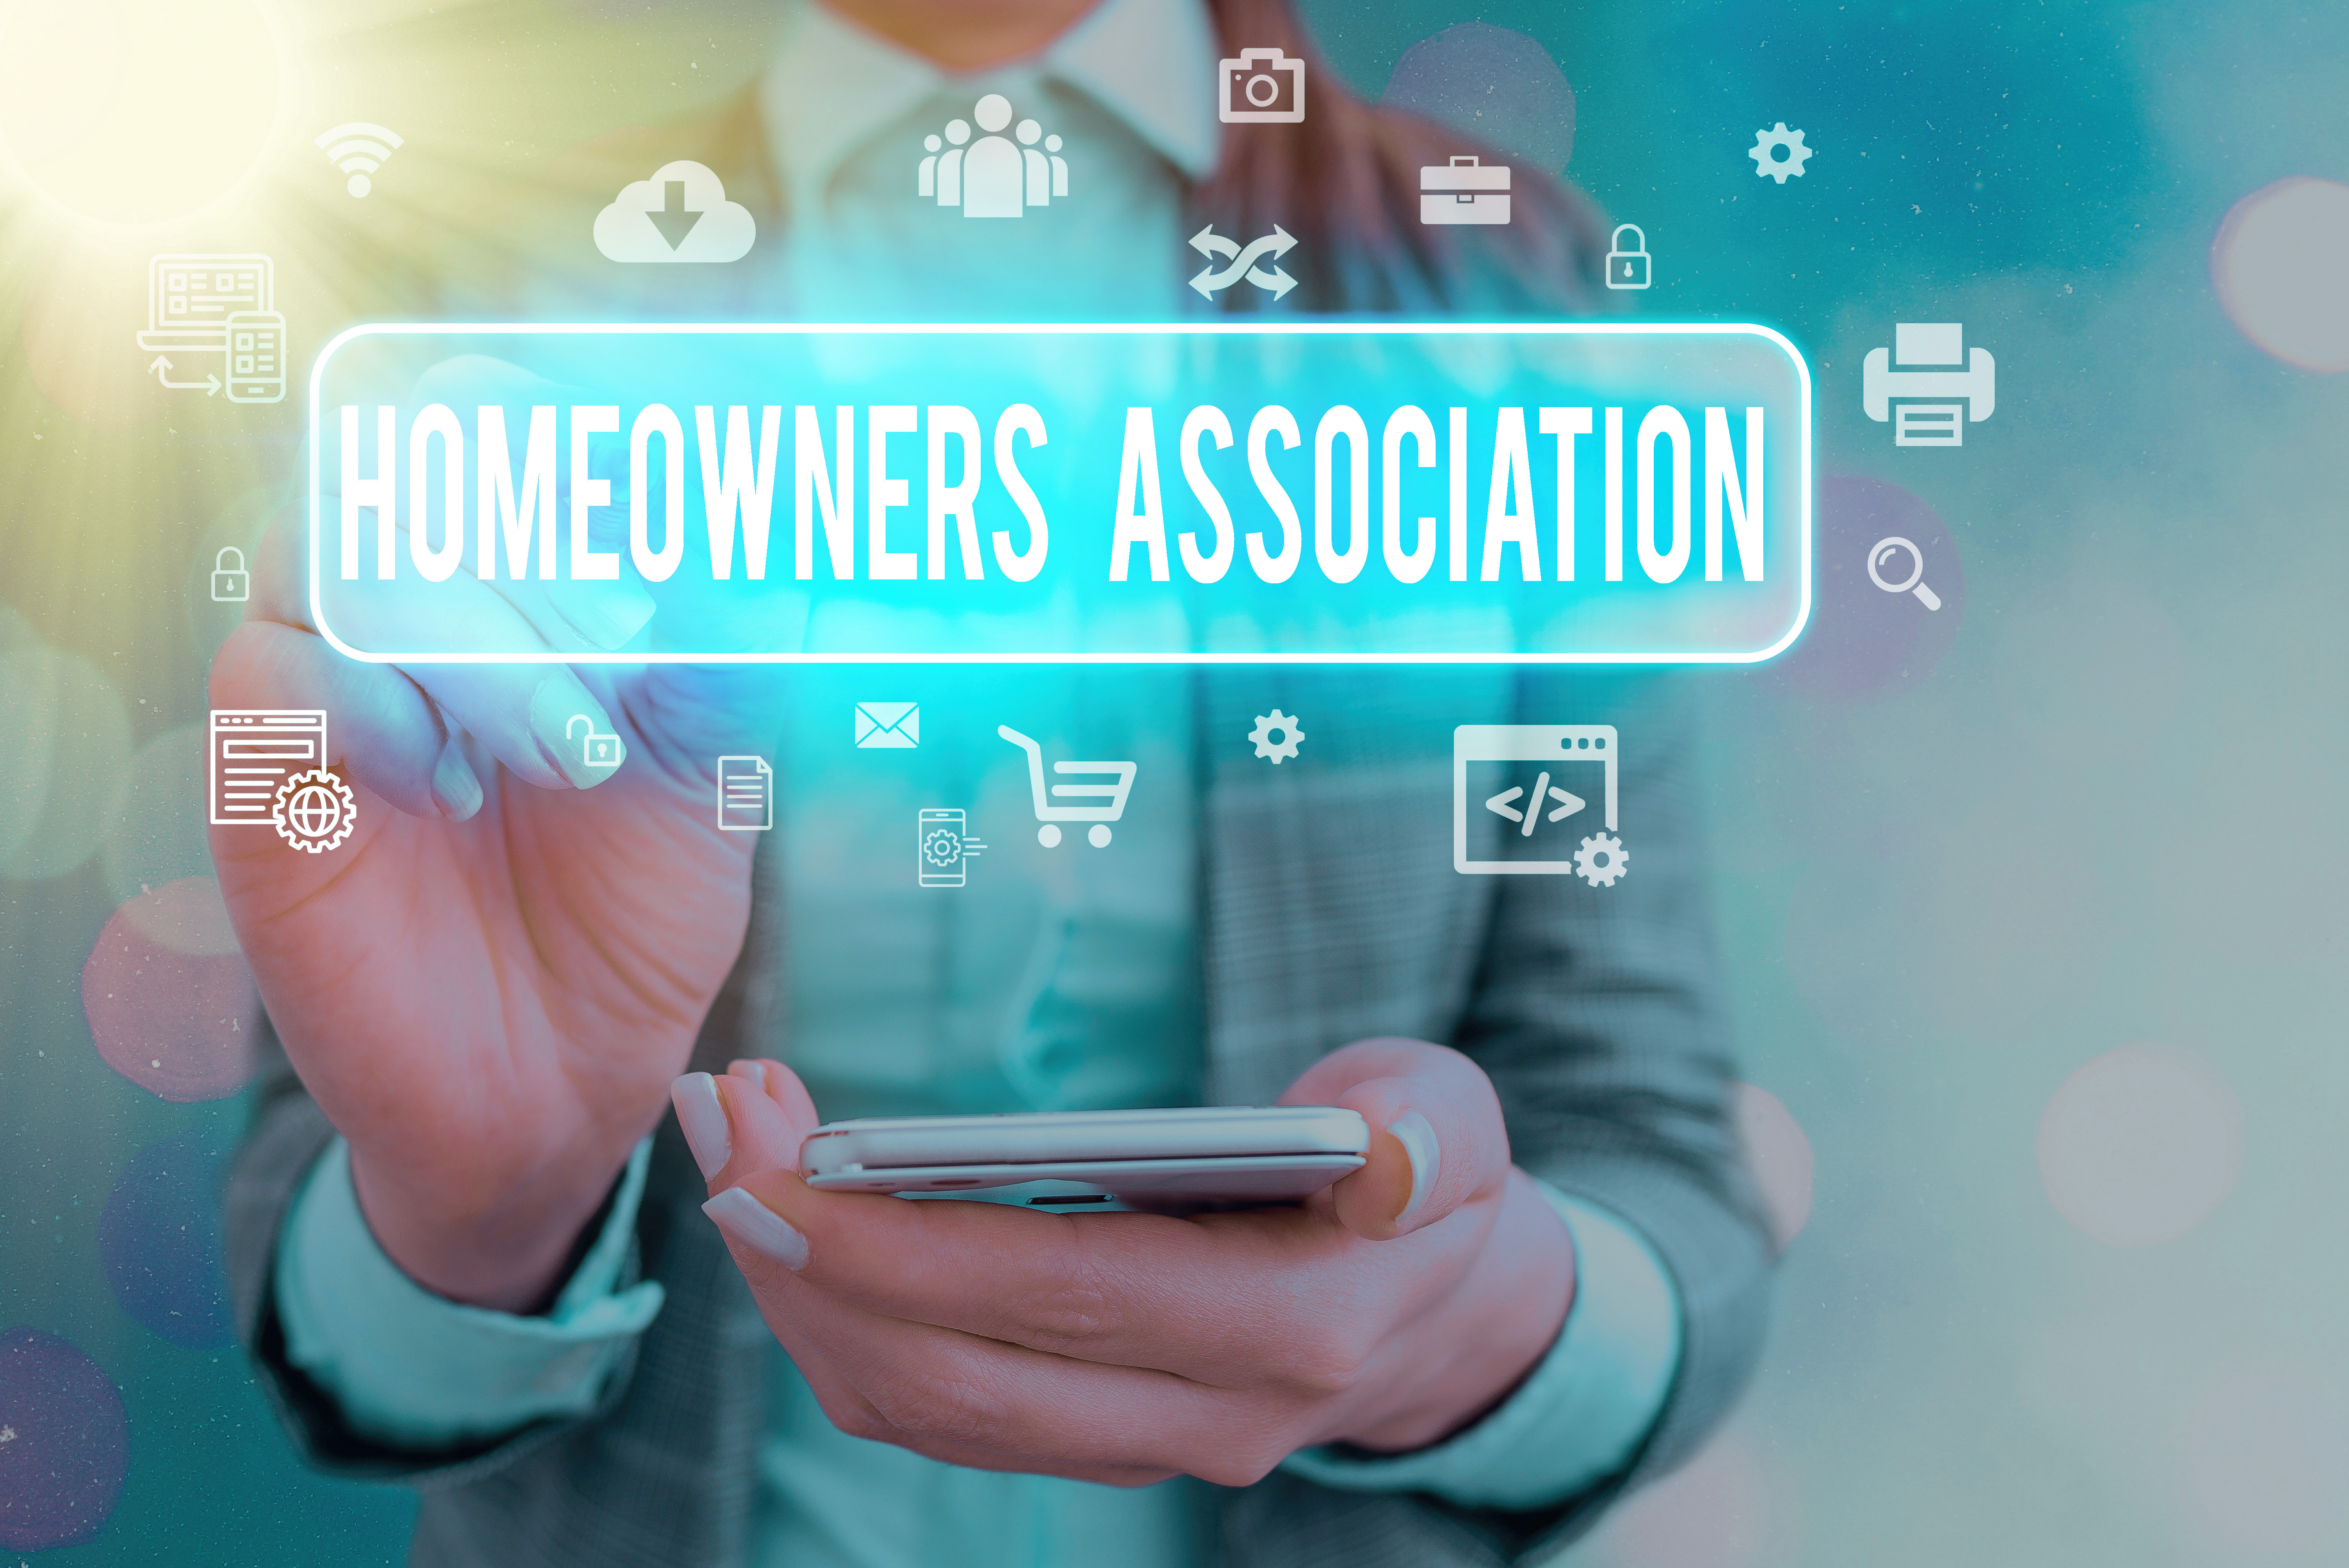 5 Methods the HOA Board Can Use to Improve Homeowner Experience